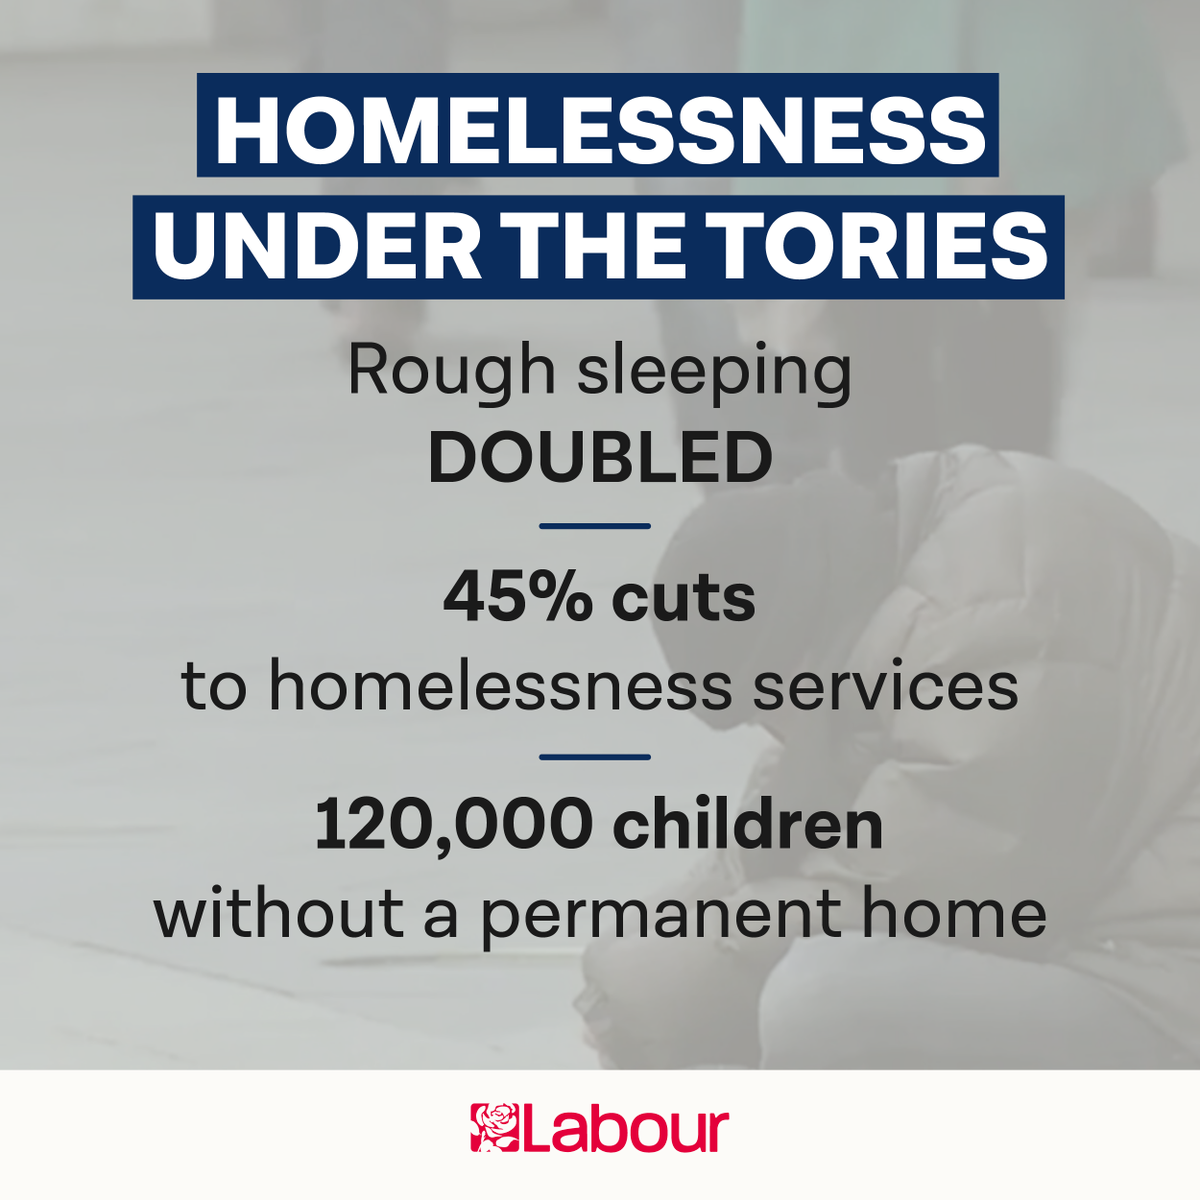 The Tory record on homelessness is a mark of national shame. Labour will build the affordable homes Britain needs and make 8,000 homes available for rough sleepers. #PMQs